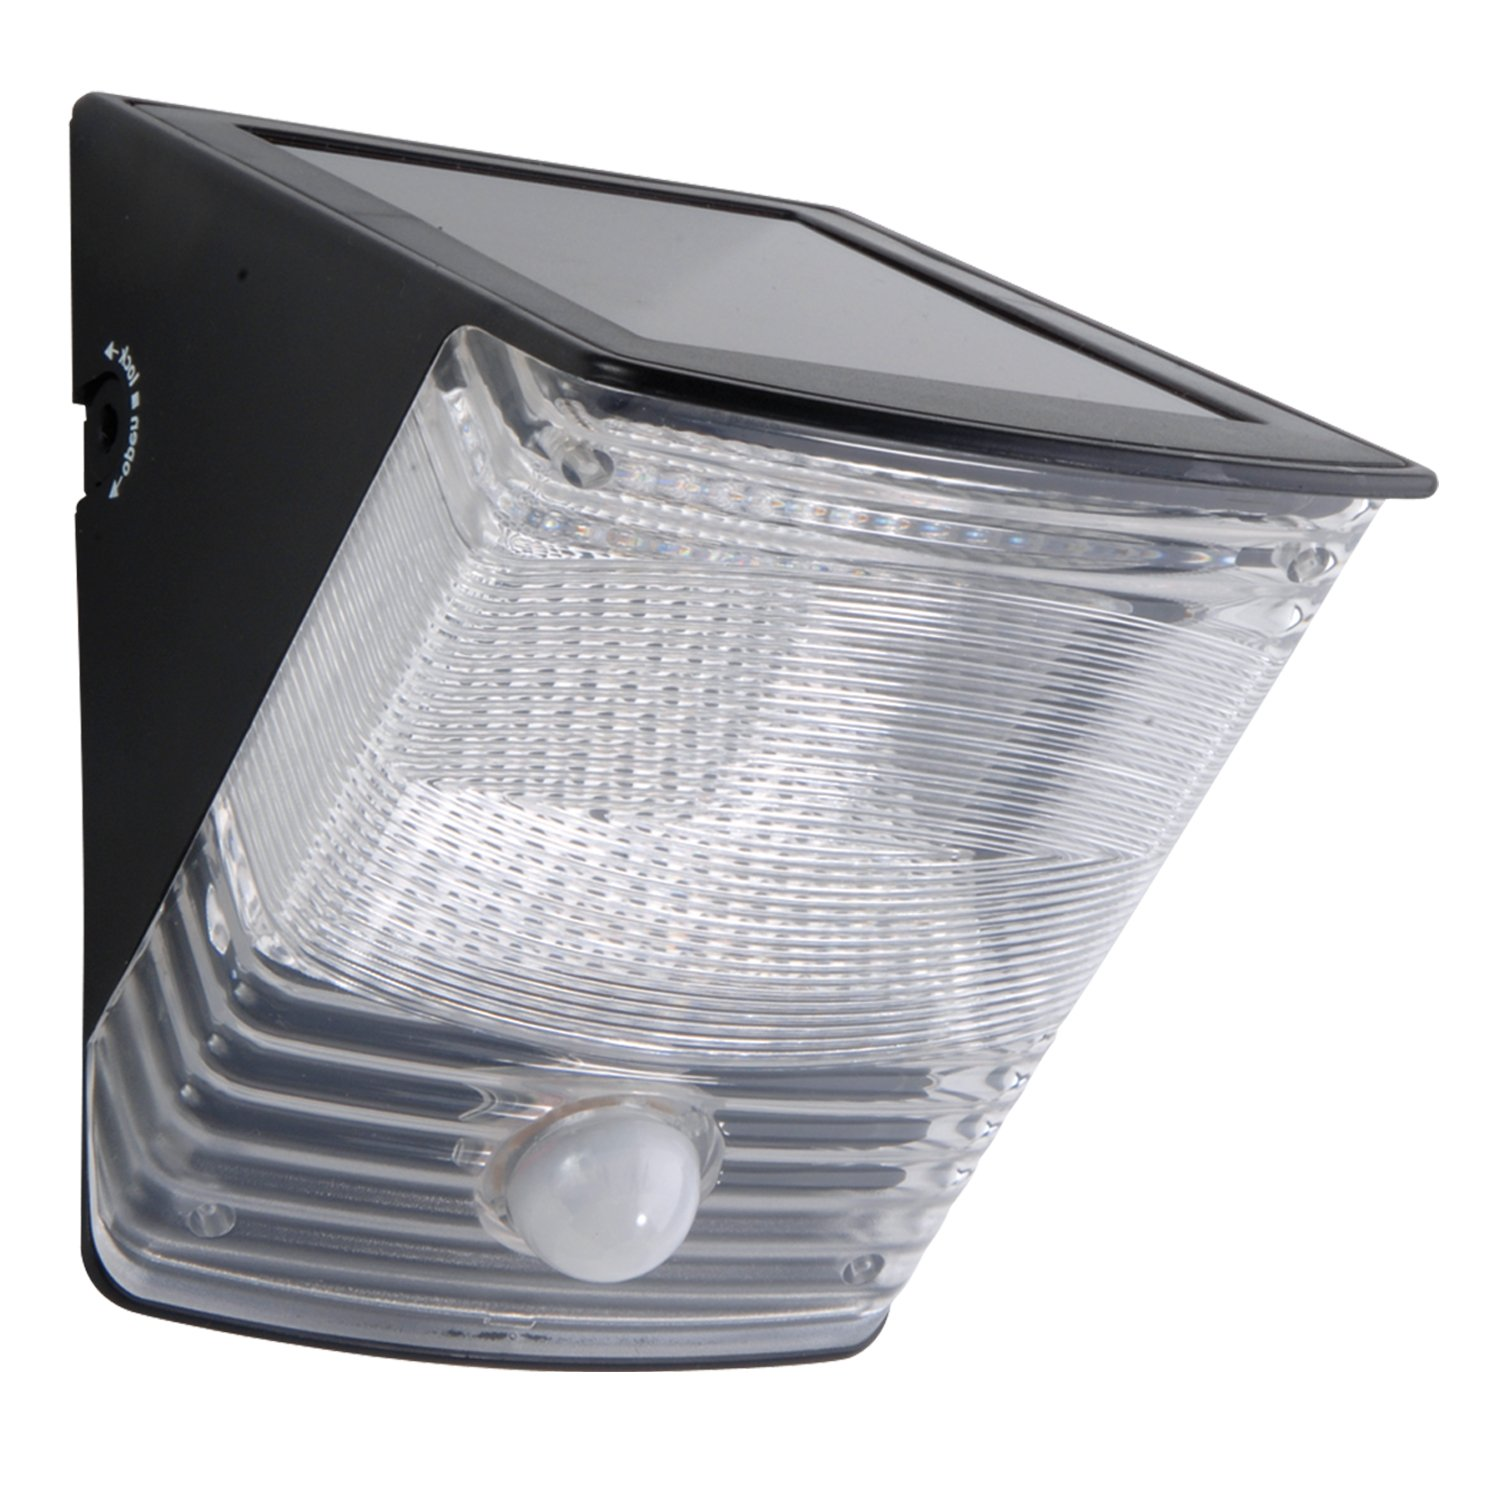 Solar outdoor motion sensor light